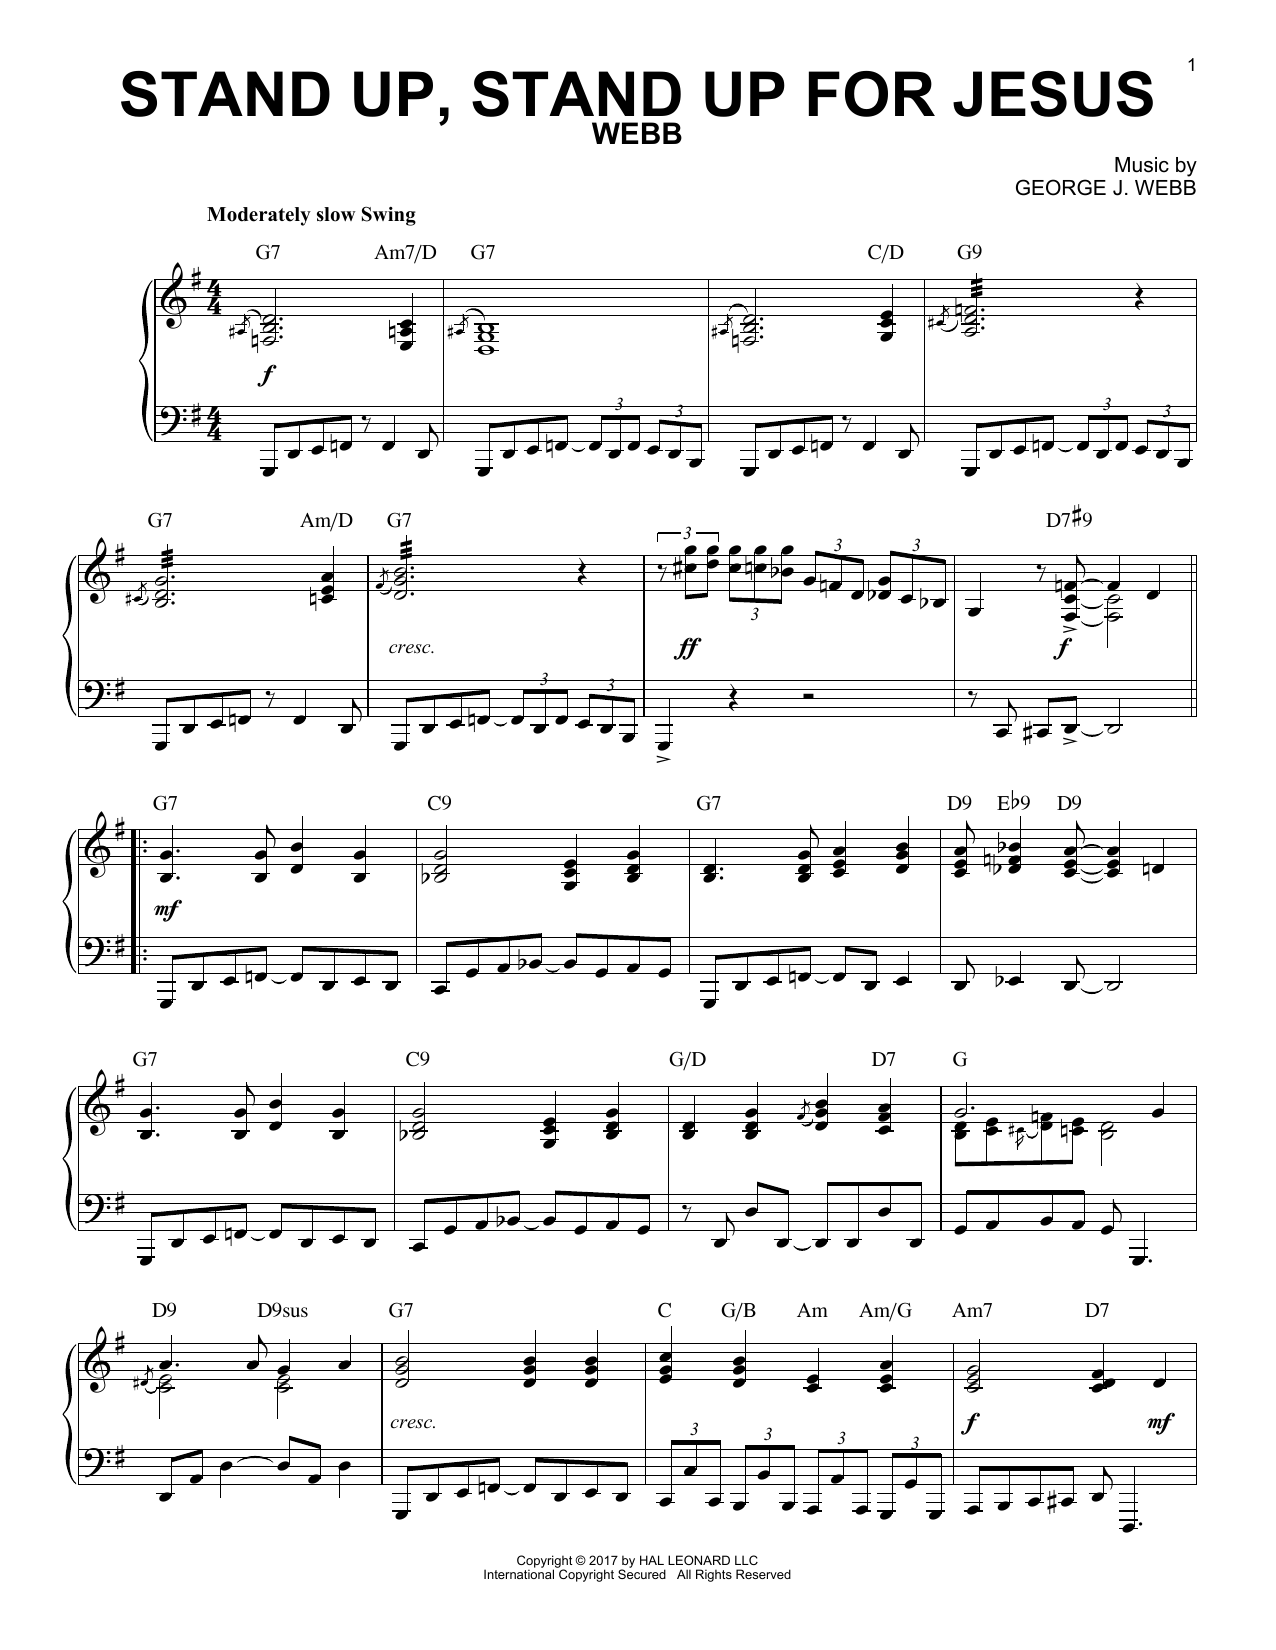 George Duffield, Jr  'Stand Up, Stand Up For Jesus' Sheet Music Notes,  Chords | Download Printable Piano - SKU: 185318